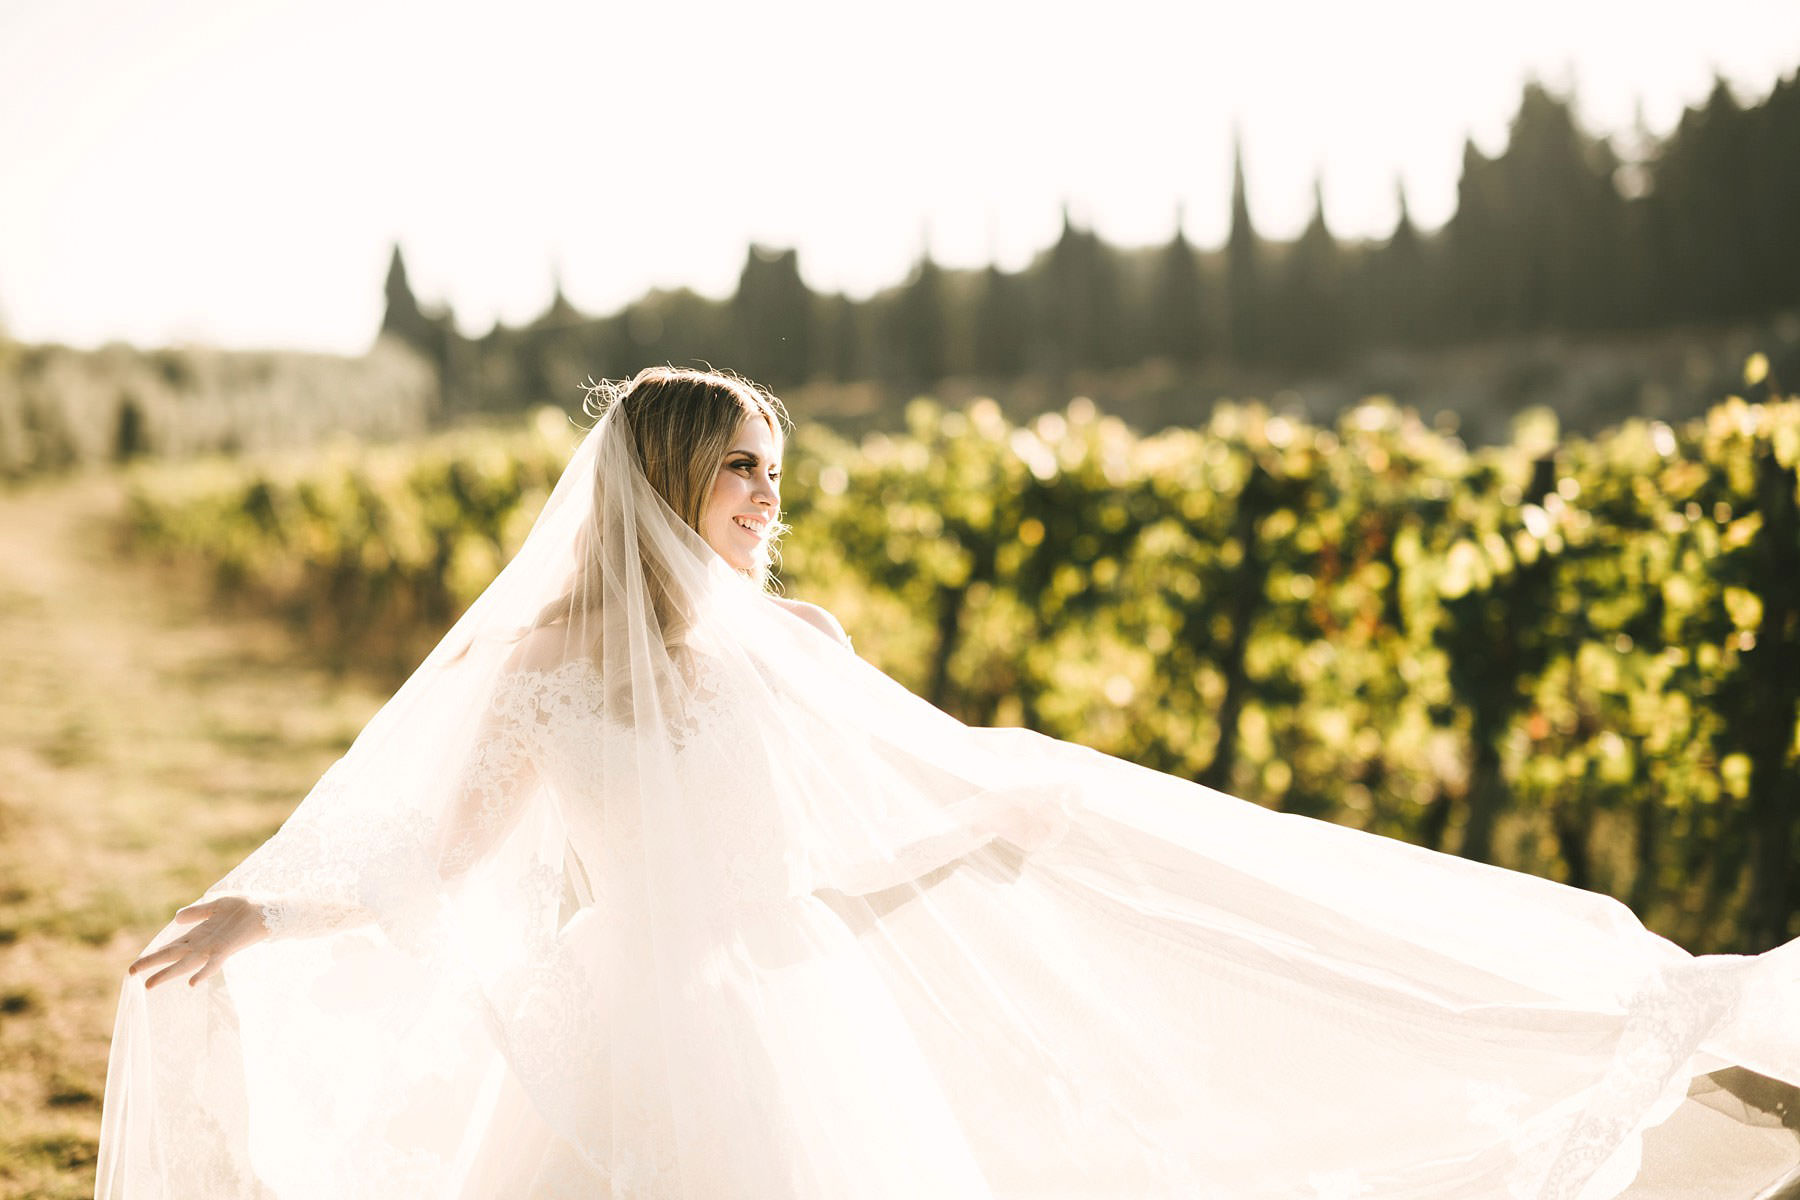 Elegant and beautiful bride Cecily in gorgeous Justin Alexander wedding gown under the Tuscan sun. Bridal wedding portrait in Chianti vineyard near Villa Mangiacane